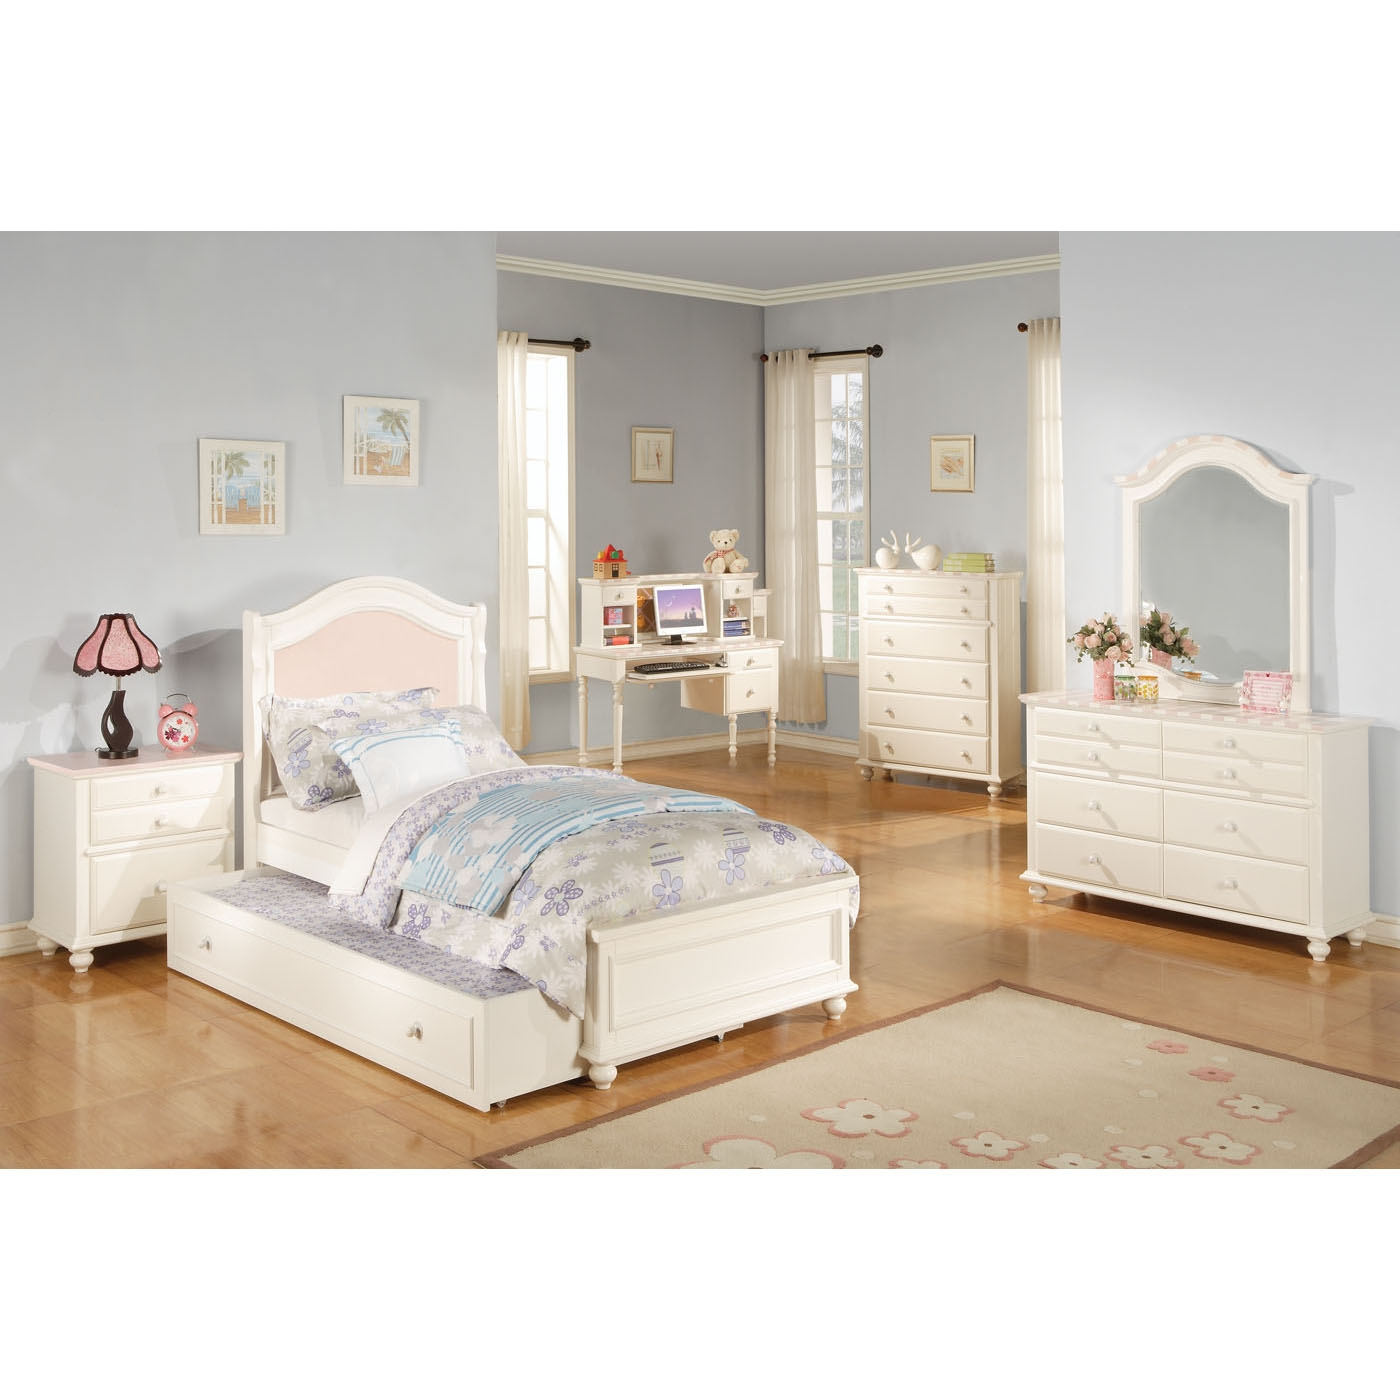 Twin Size Bed Frame For Headboard And Footboard